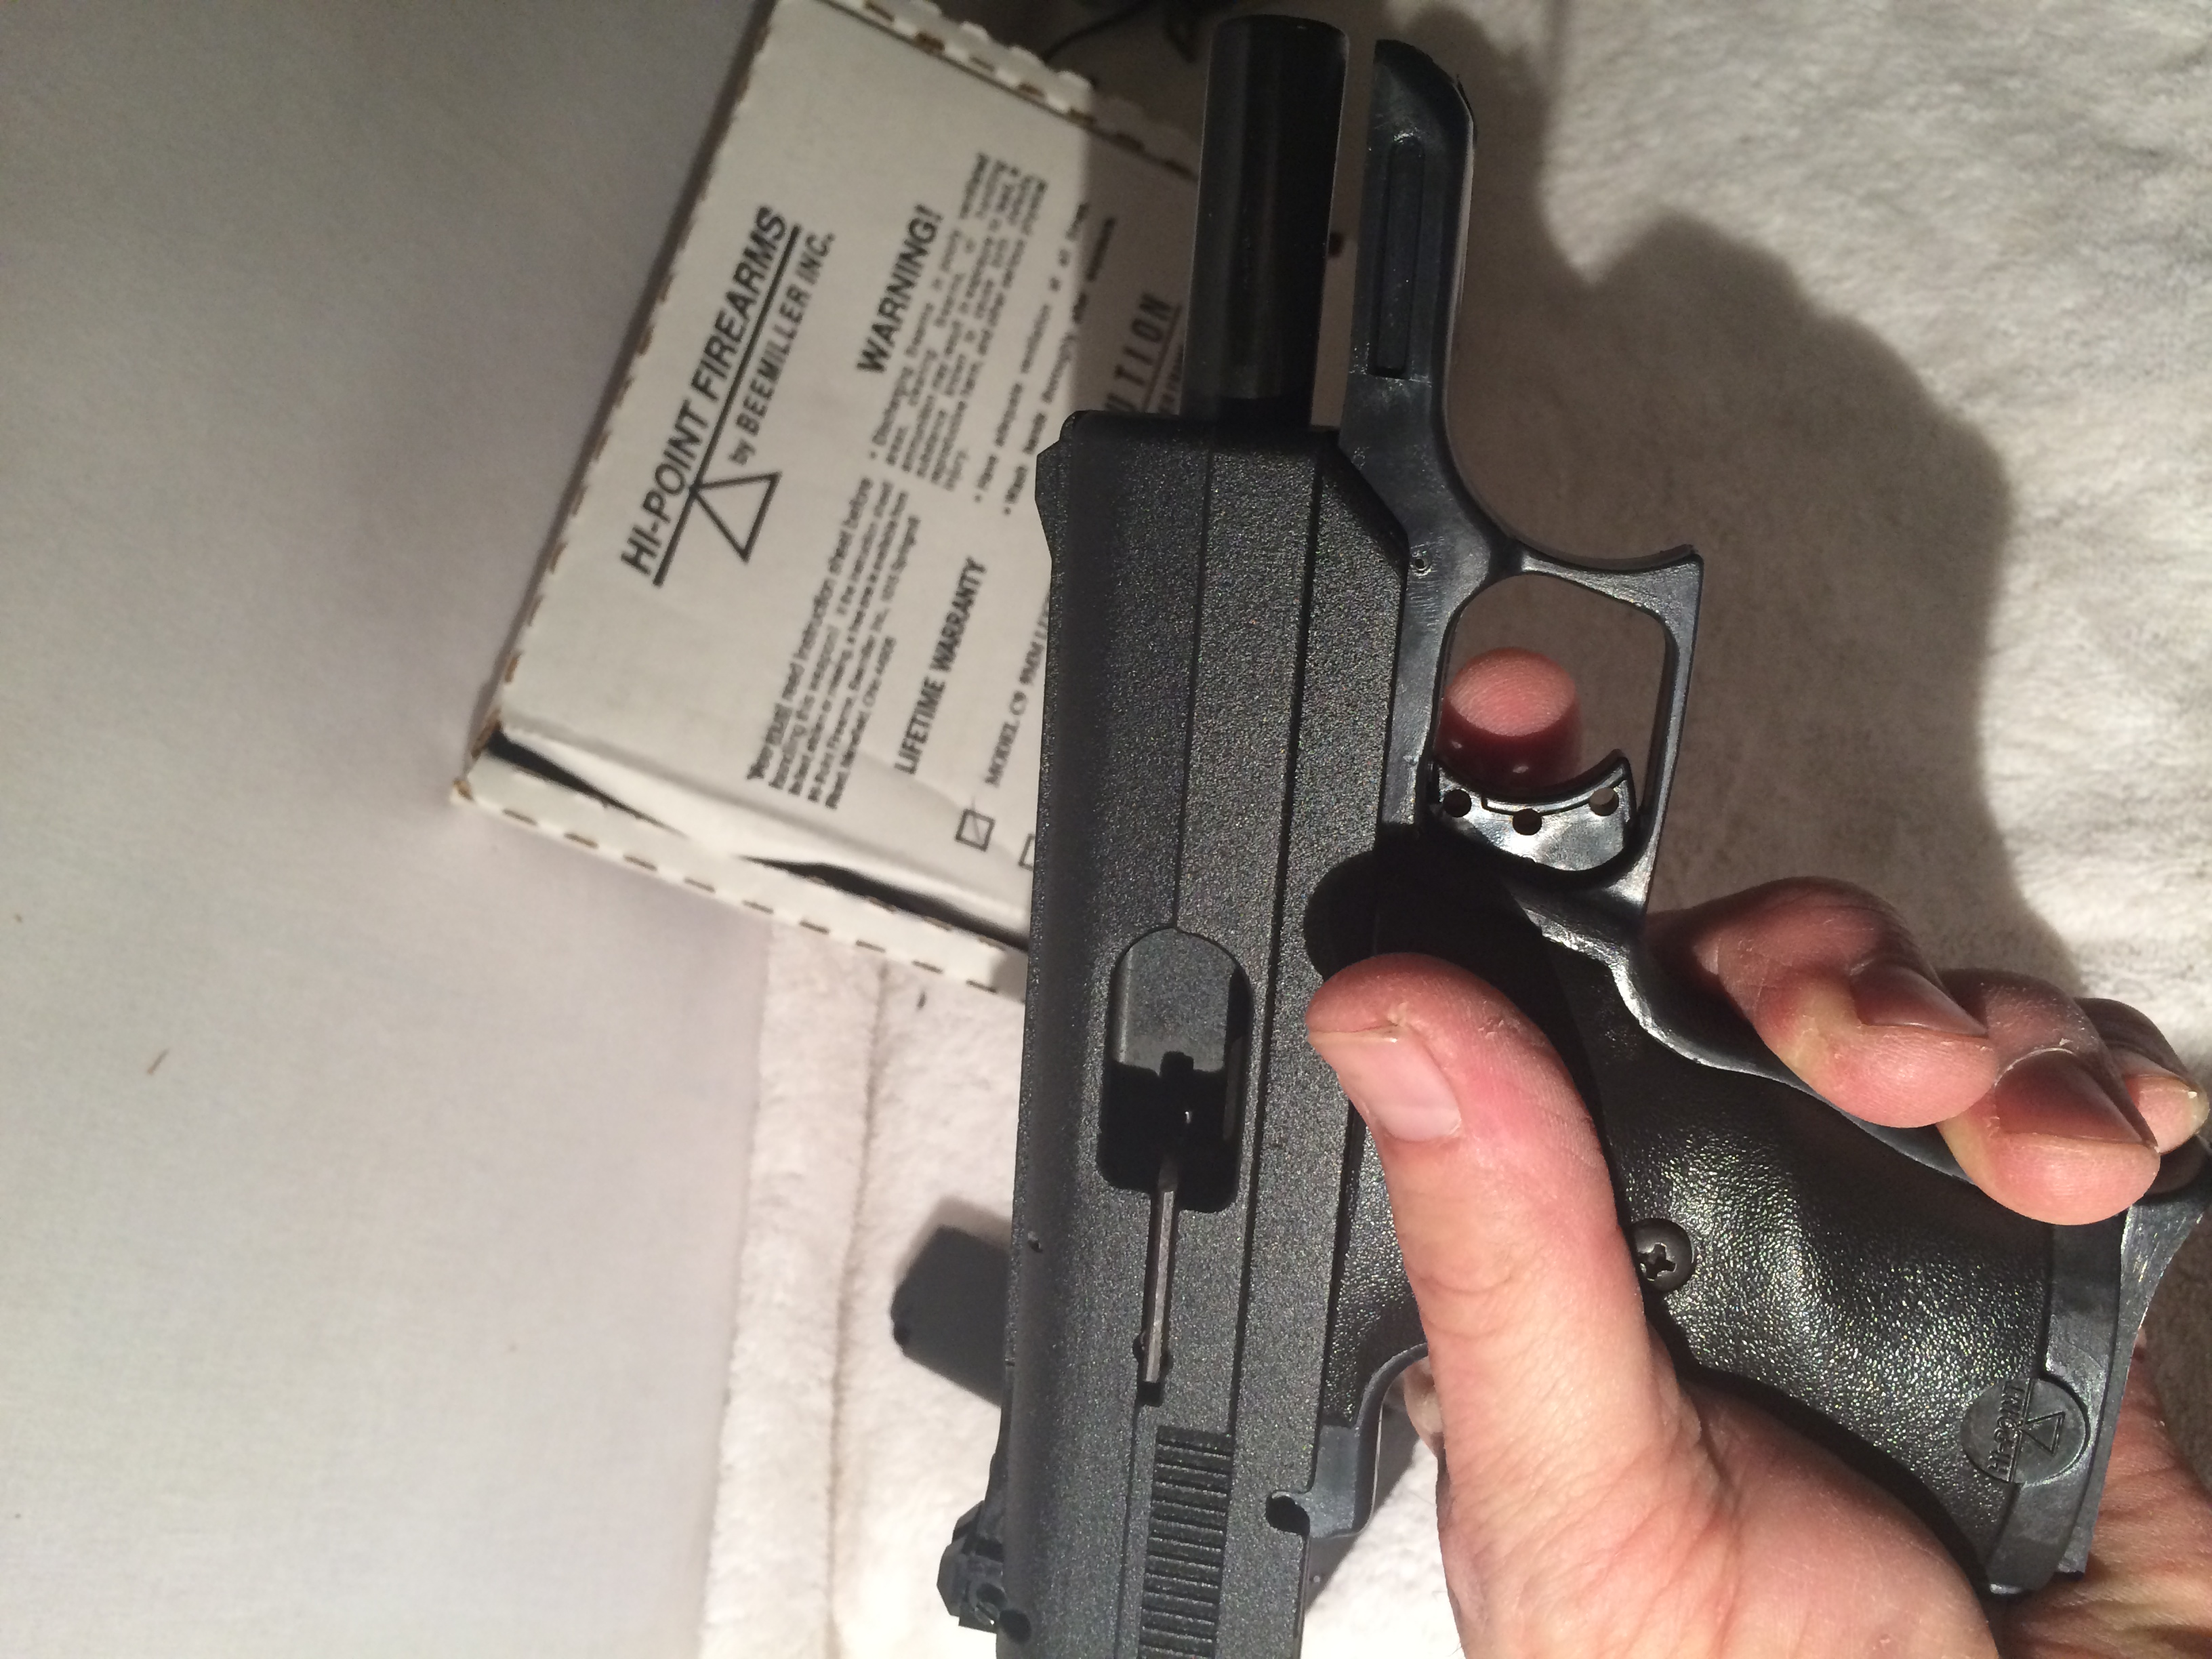 FS Hi-Point C9 , 9mm pistol - General Buy/Sell/Trade Forum